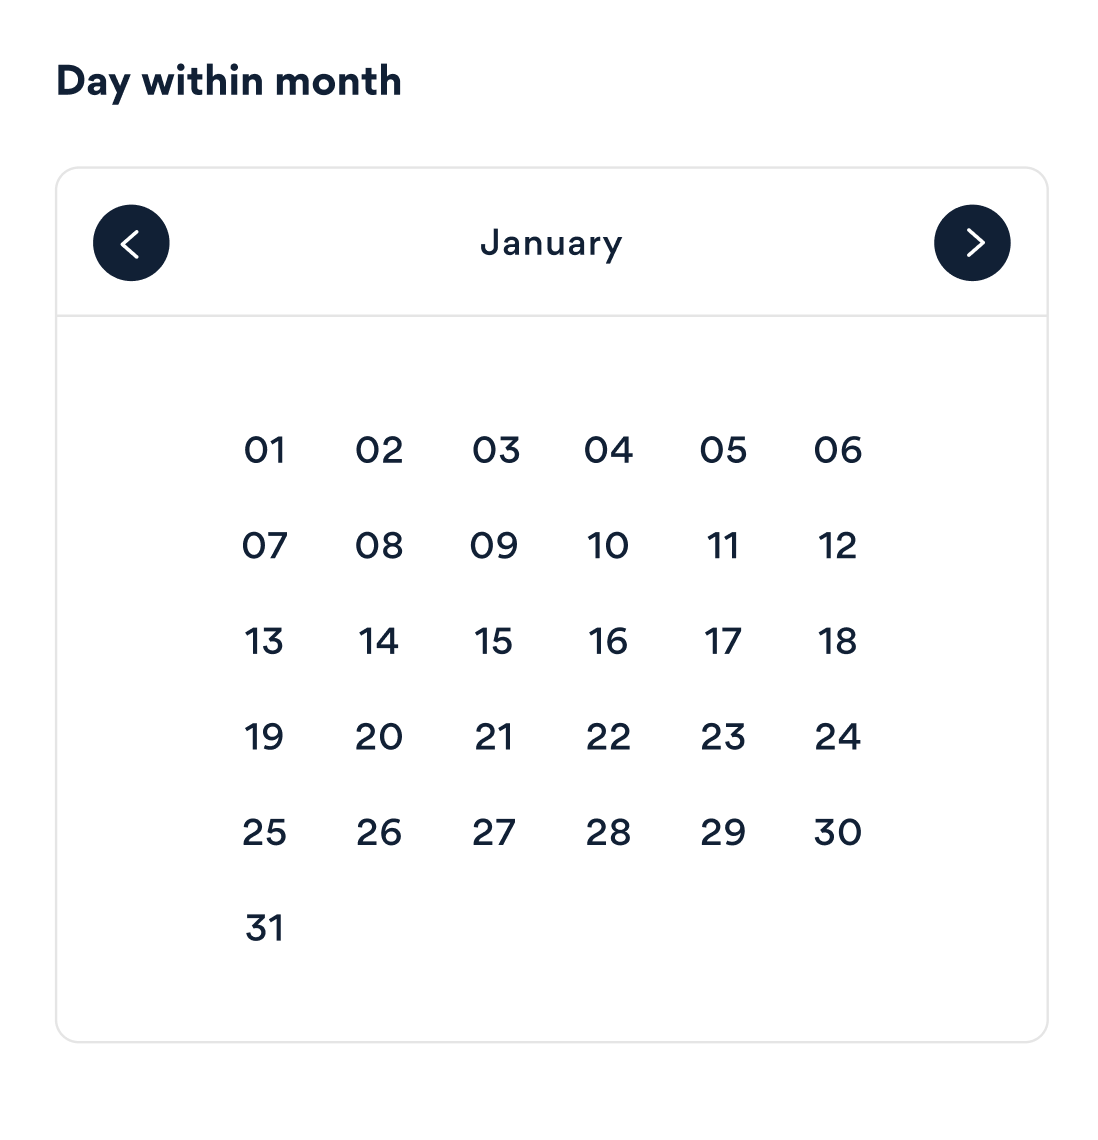 Rethinking the date picker UI - UX Collective